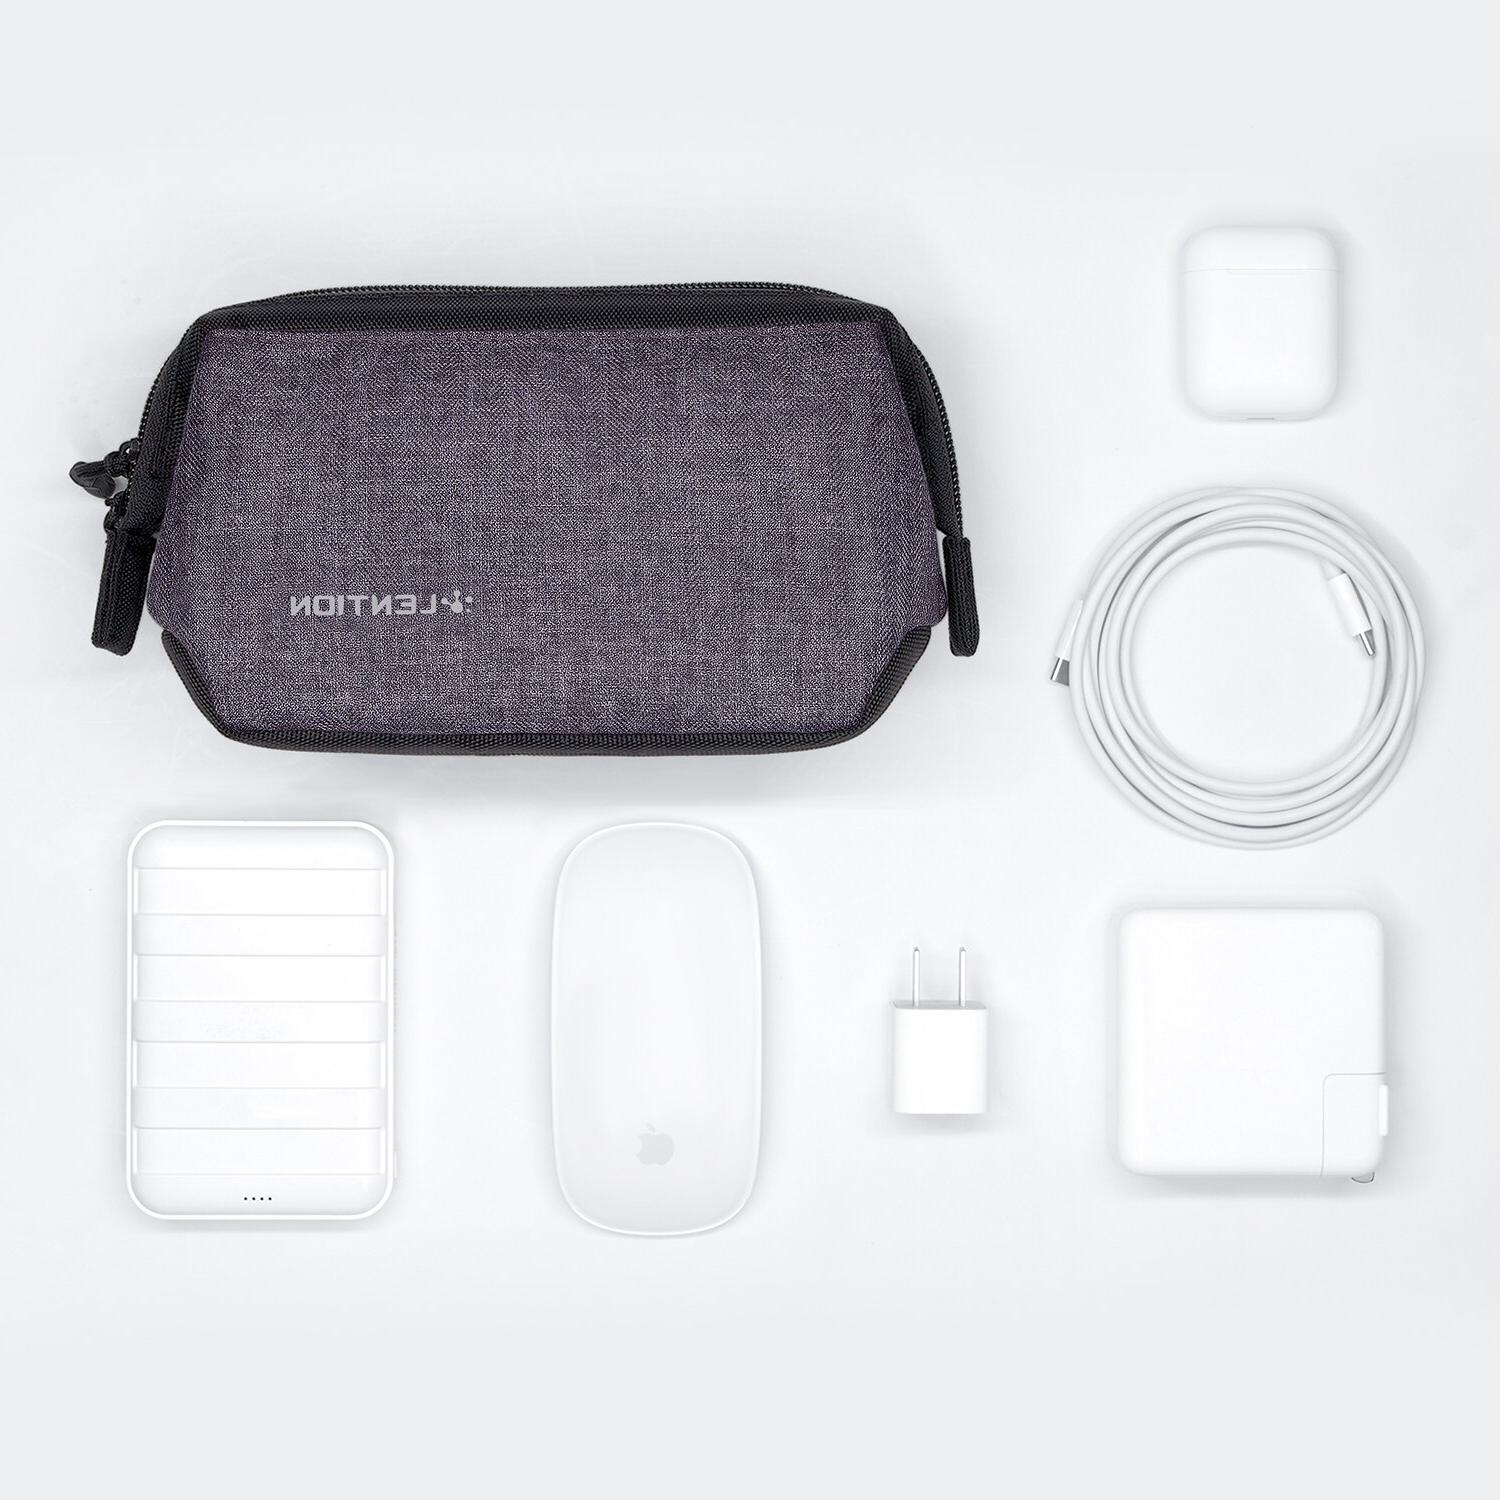 <font><b>Sleeve</b></font> for Power Adapter, Charger, Mouse, Phone, <font><b>Pencil</b></font> and More